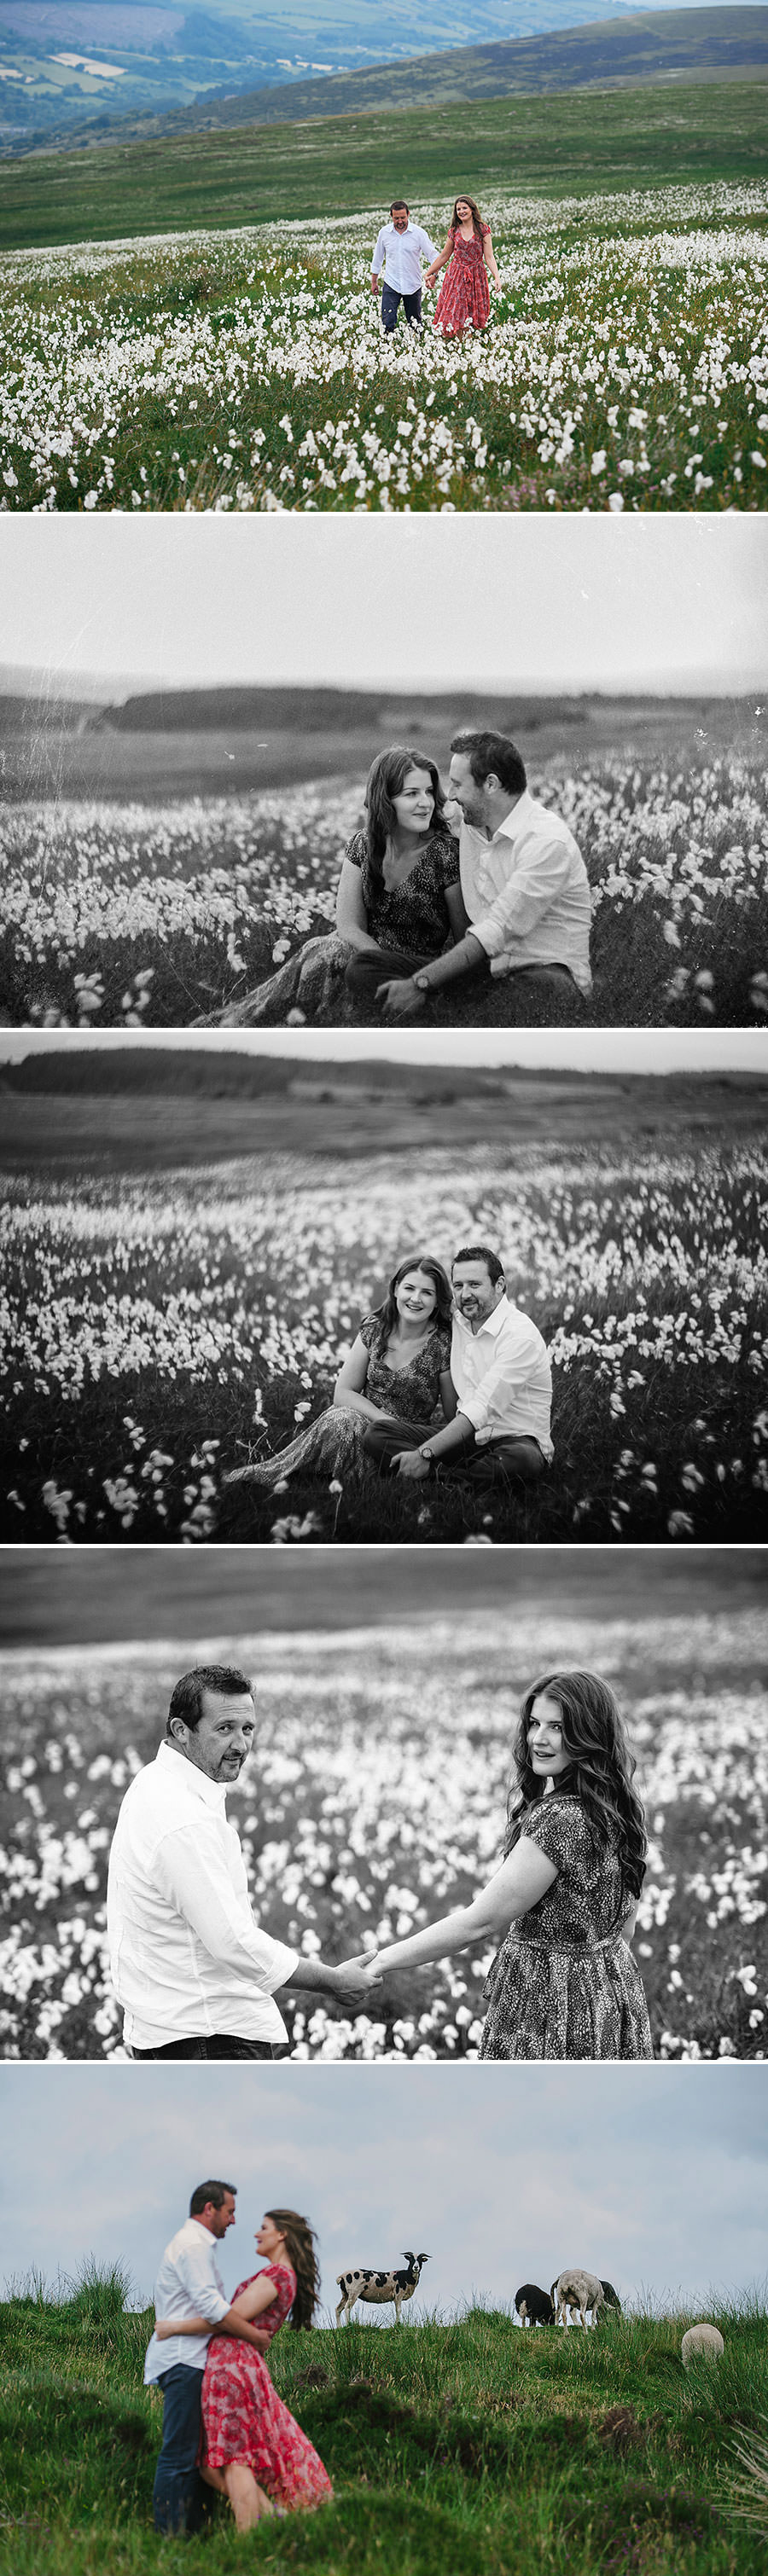 M + G | Couple in Love | Wicklow Engagement Session | Dublin Love Photographer 2